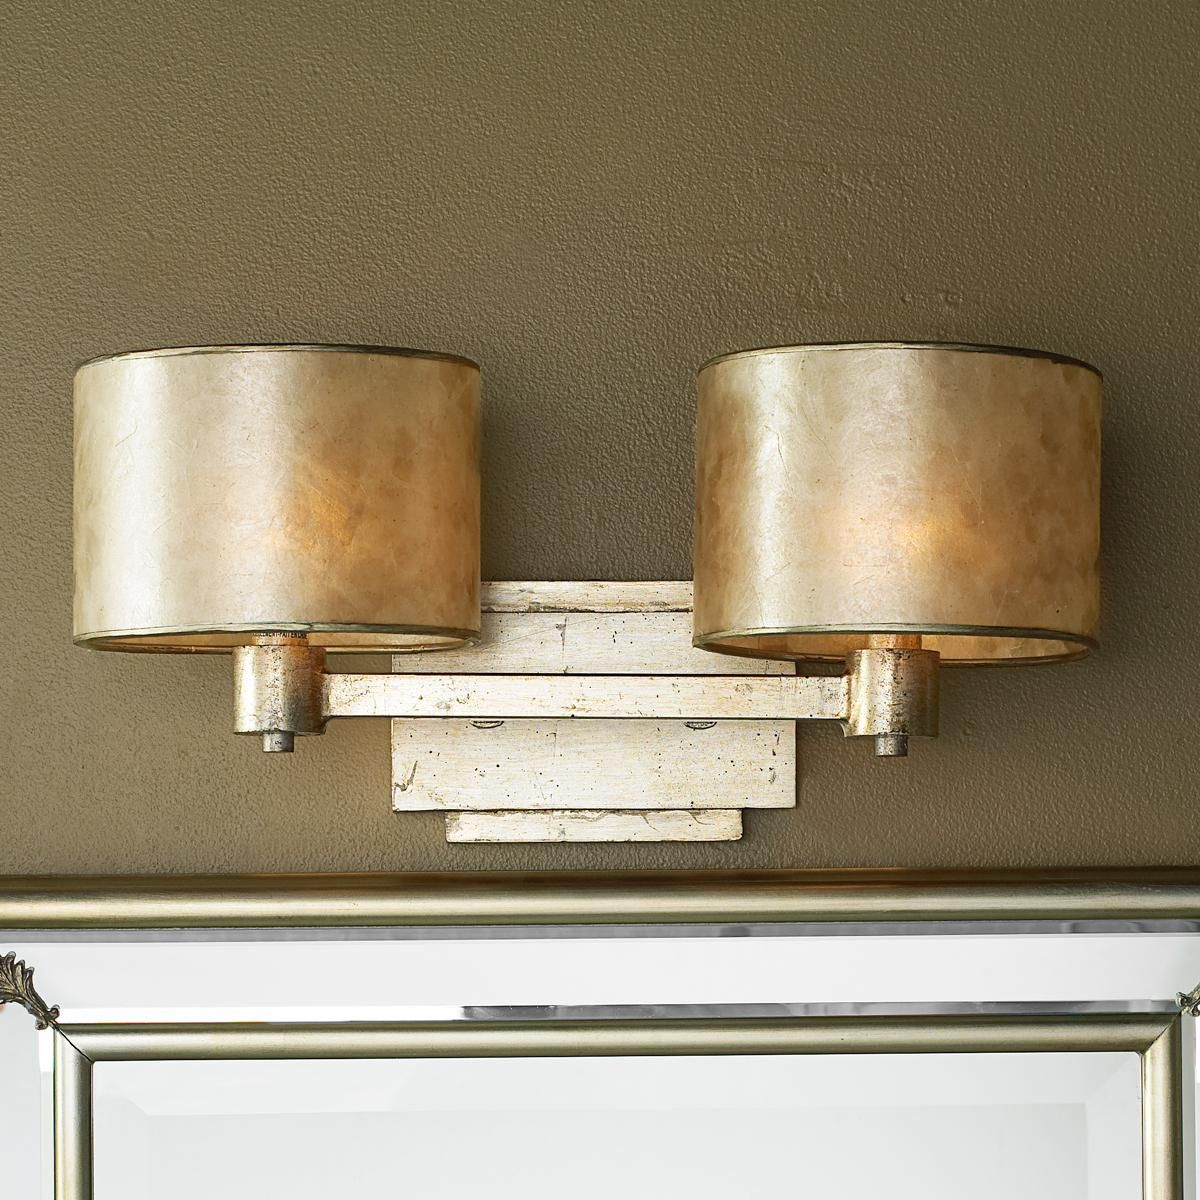 elegant bathroom lighting classic bathroom champagne elegance bath light round silver mica drum shades and squared lines softened with warm silvery gold finish dress an elegant bathroom in 2018 great looks for